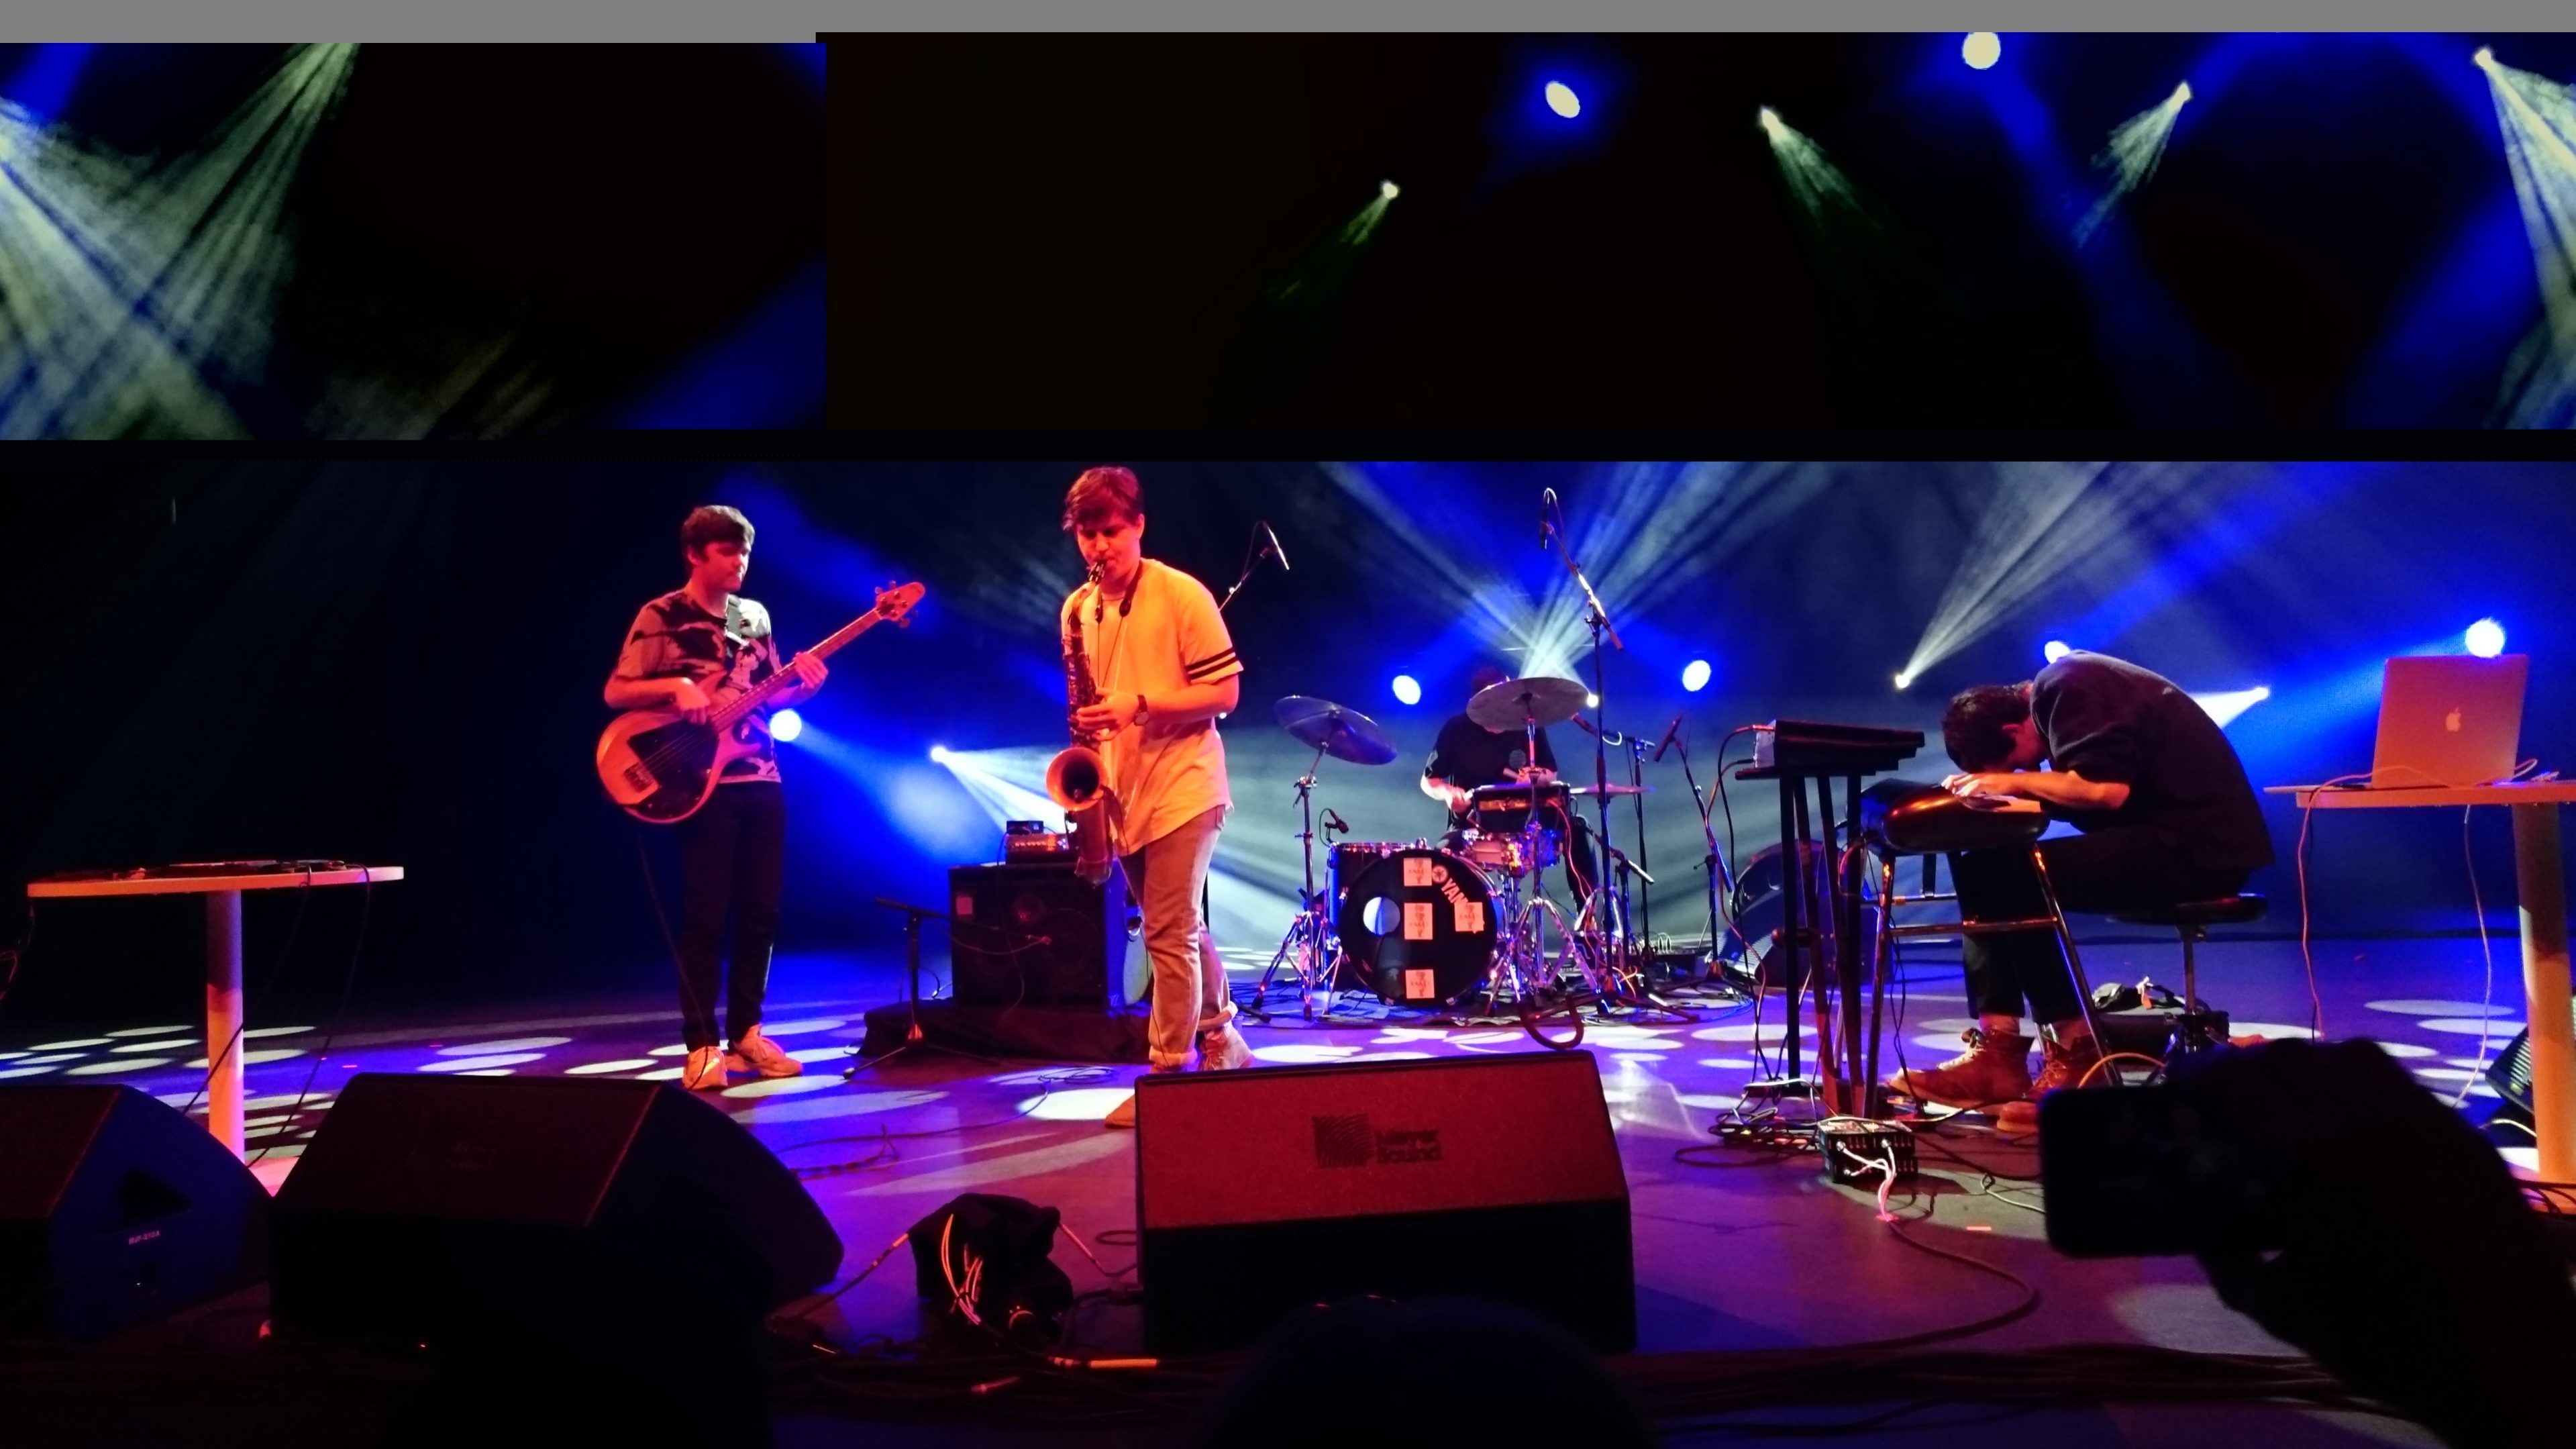 BBNG, BadBadNotGood, Ottawa, Algonzuin Commons Theatre, music